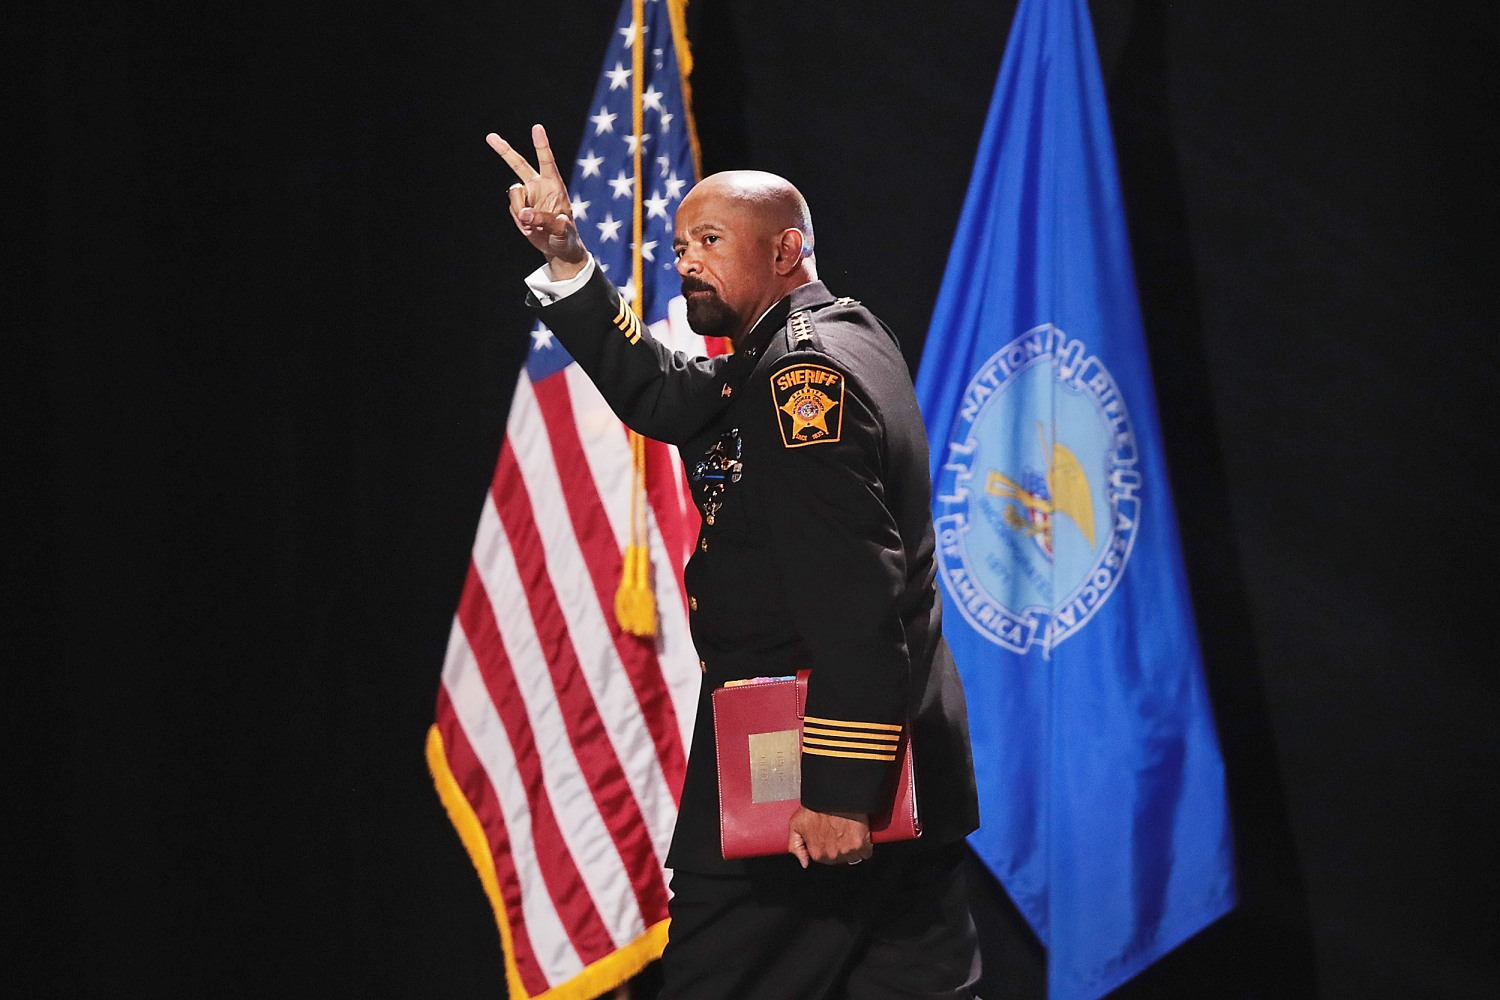 Tough-Talking Milwaukee County Sheriff David Clarke Resigns